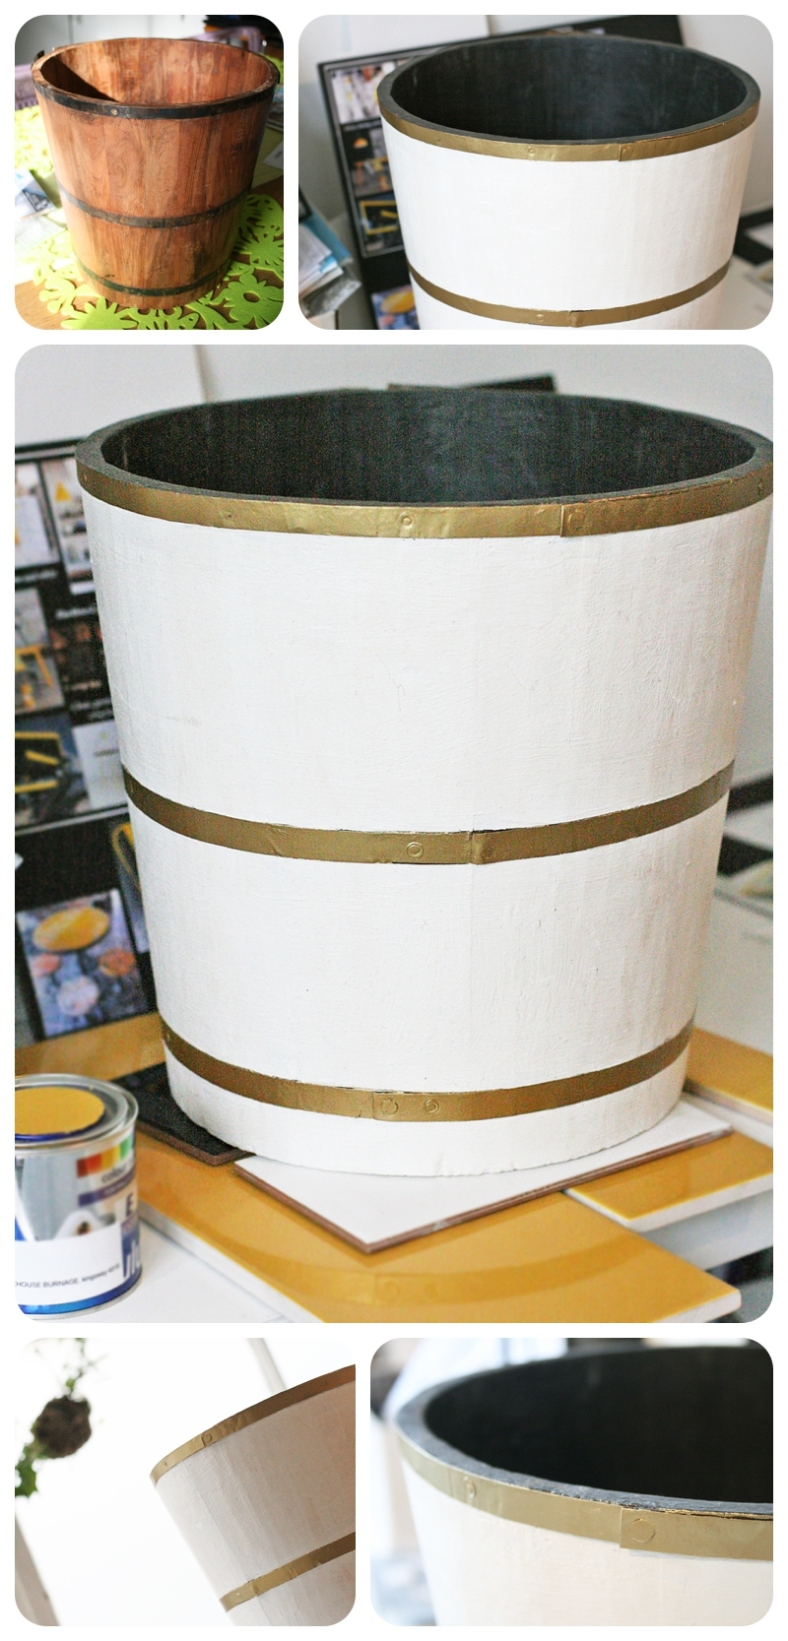 Upcycling a wooden waste paper bin